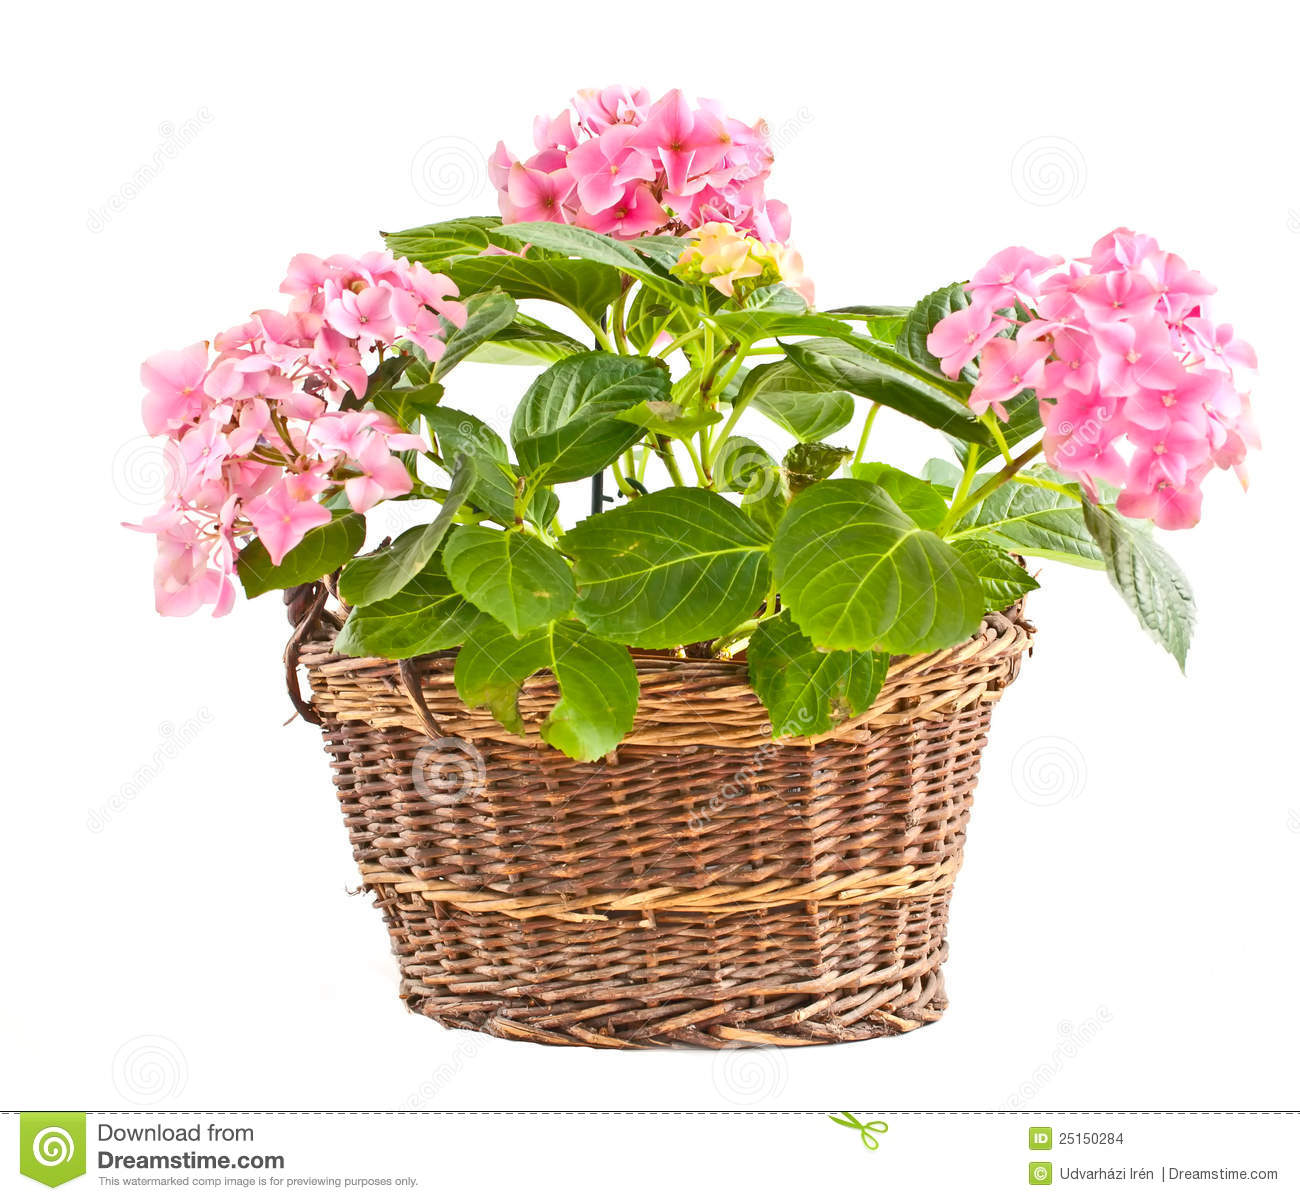 Hydrangea in a braided basket.